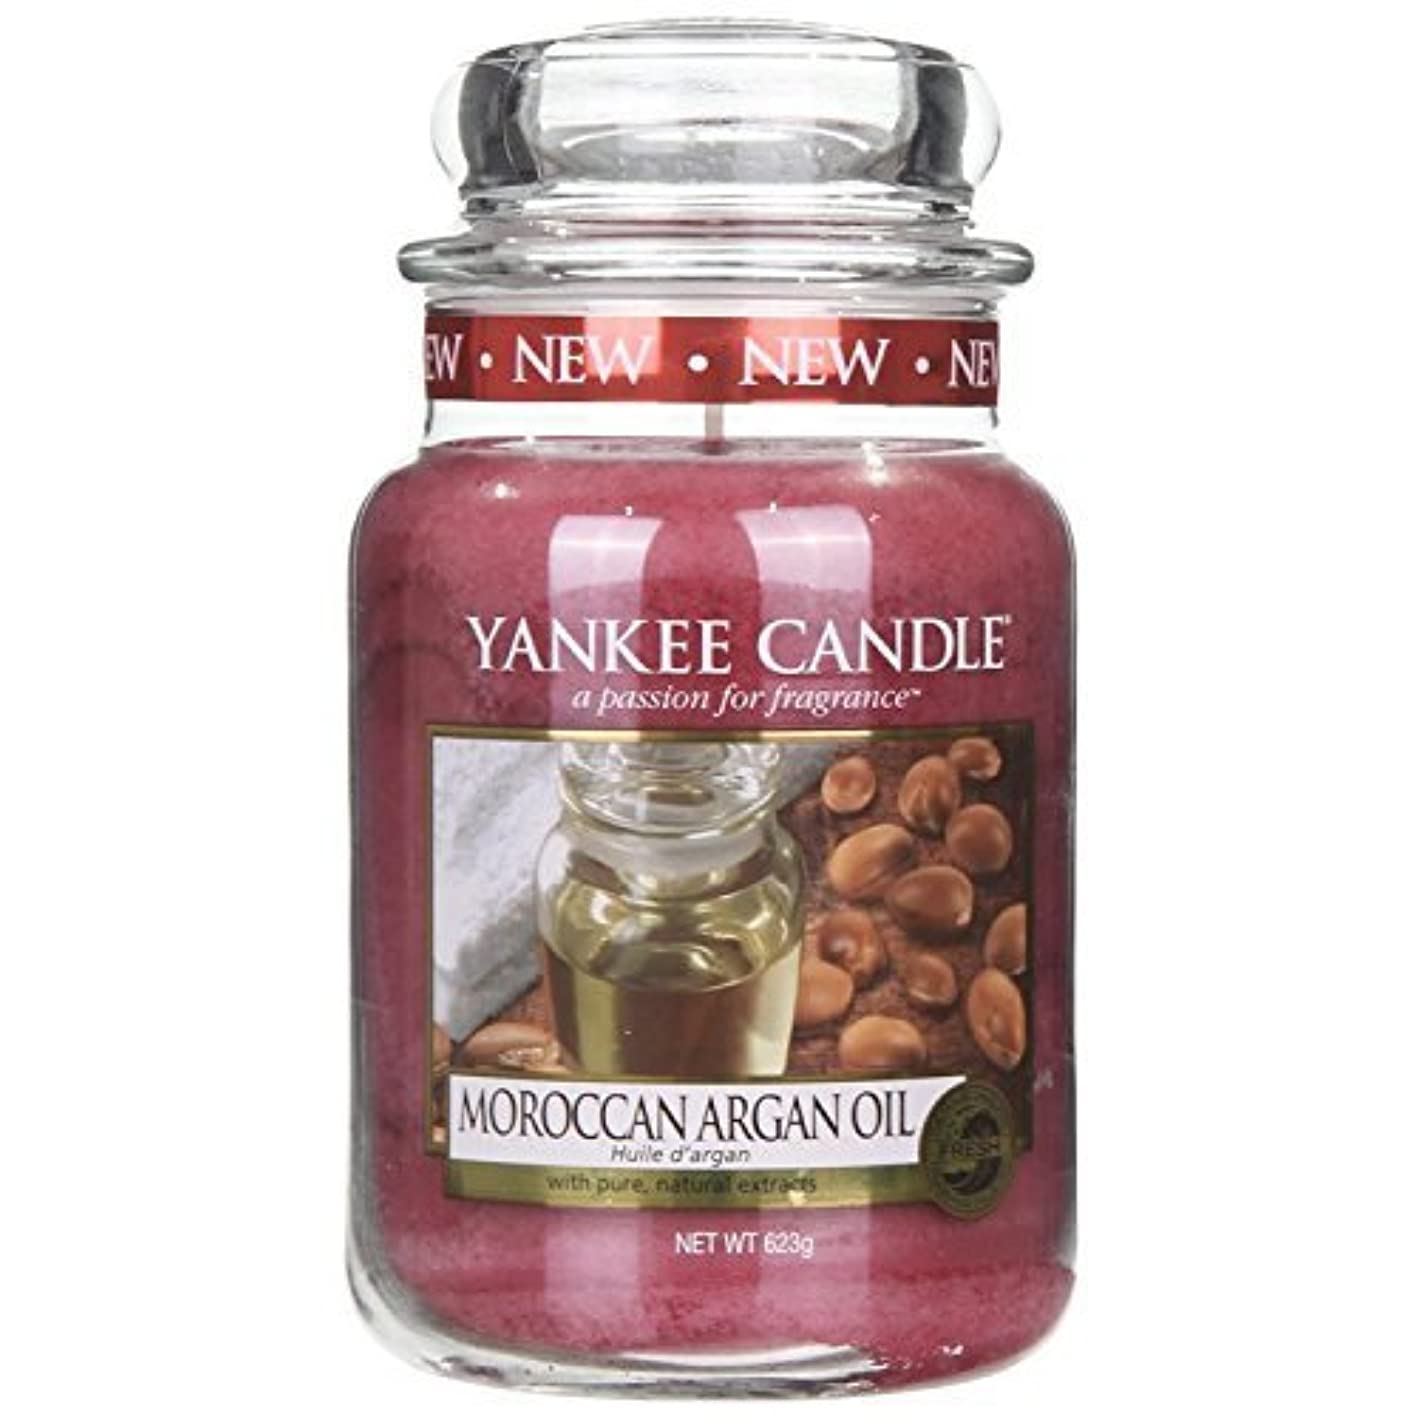 処方するファーザーファージュこんにちはYankee Candle MOROCCAN ARGAN OIL 22oz Large Jar Candle - UK Exclusive by Yankee Candle [並行輸入品]